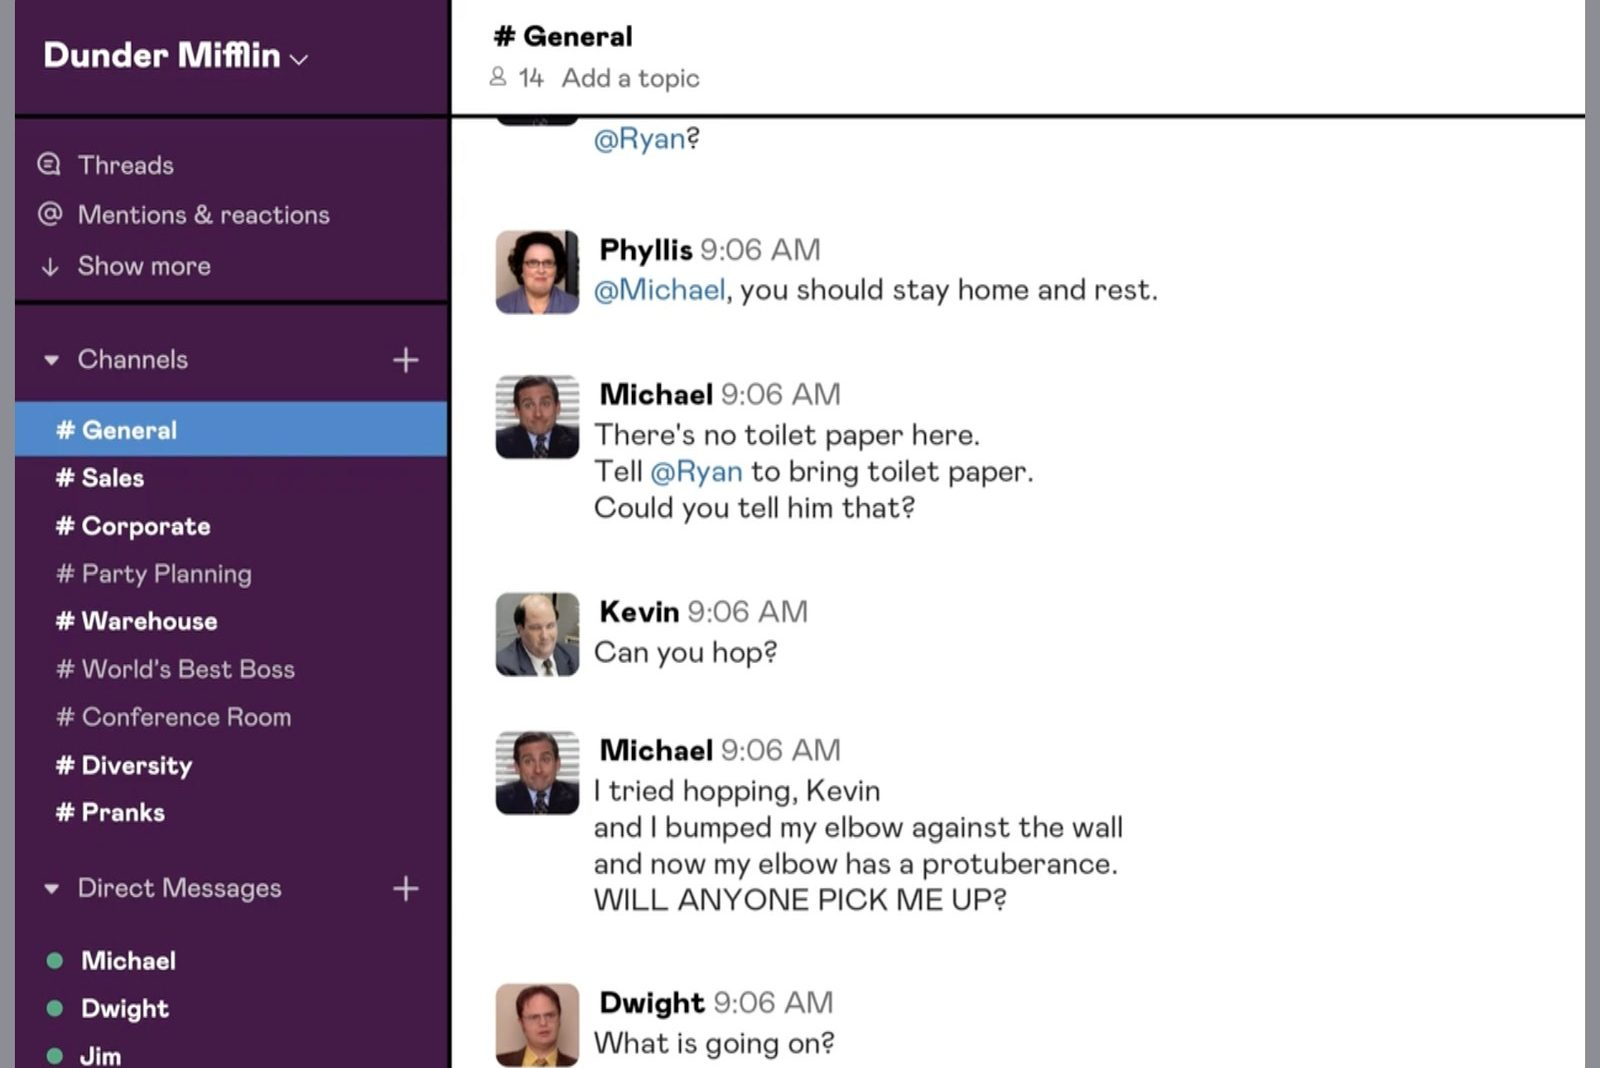 """The Office"" is playing out on Slack in real-time."